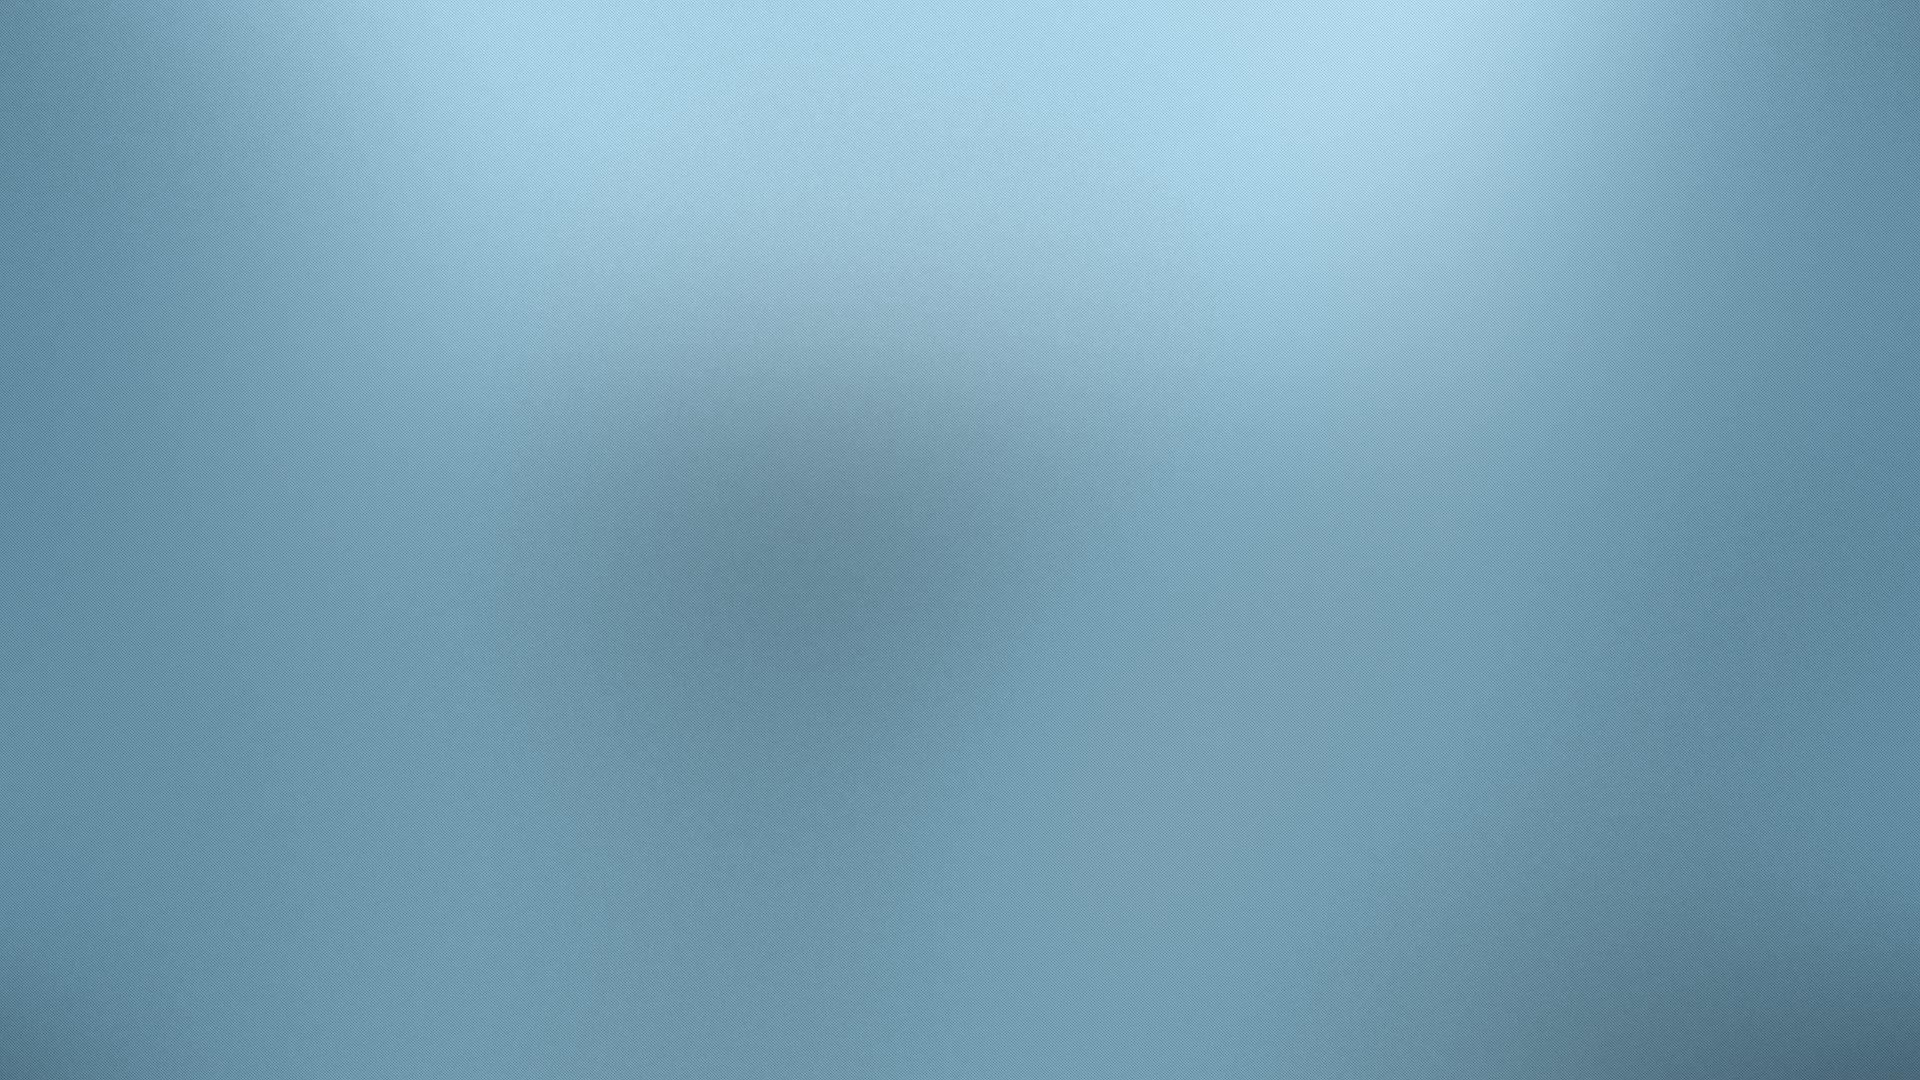 Pale dark blue background